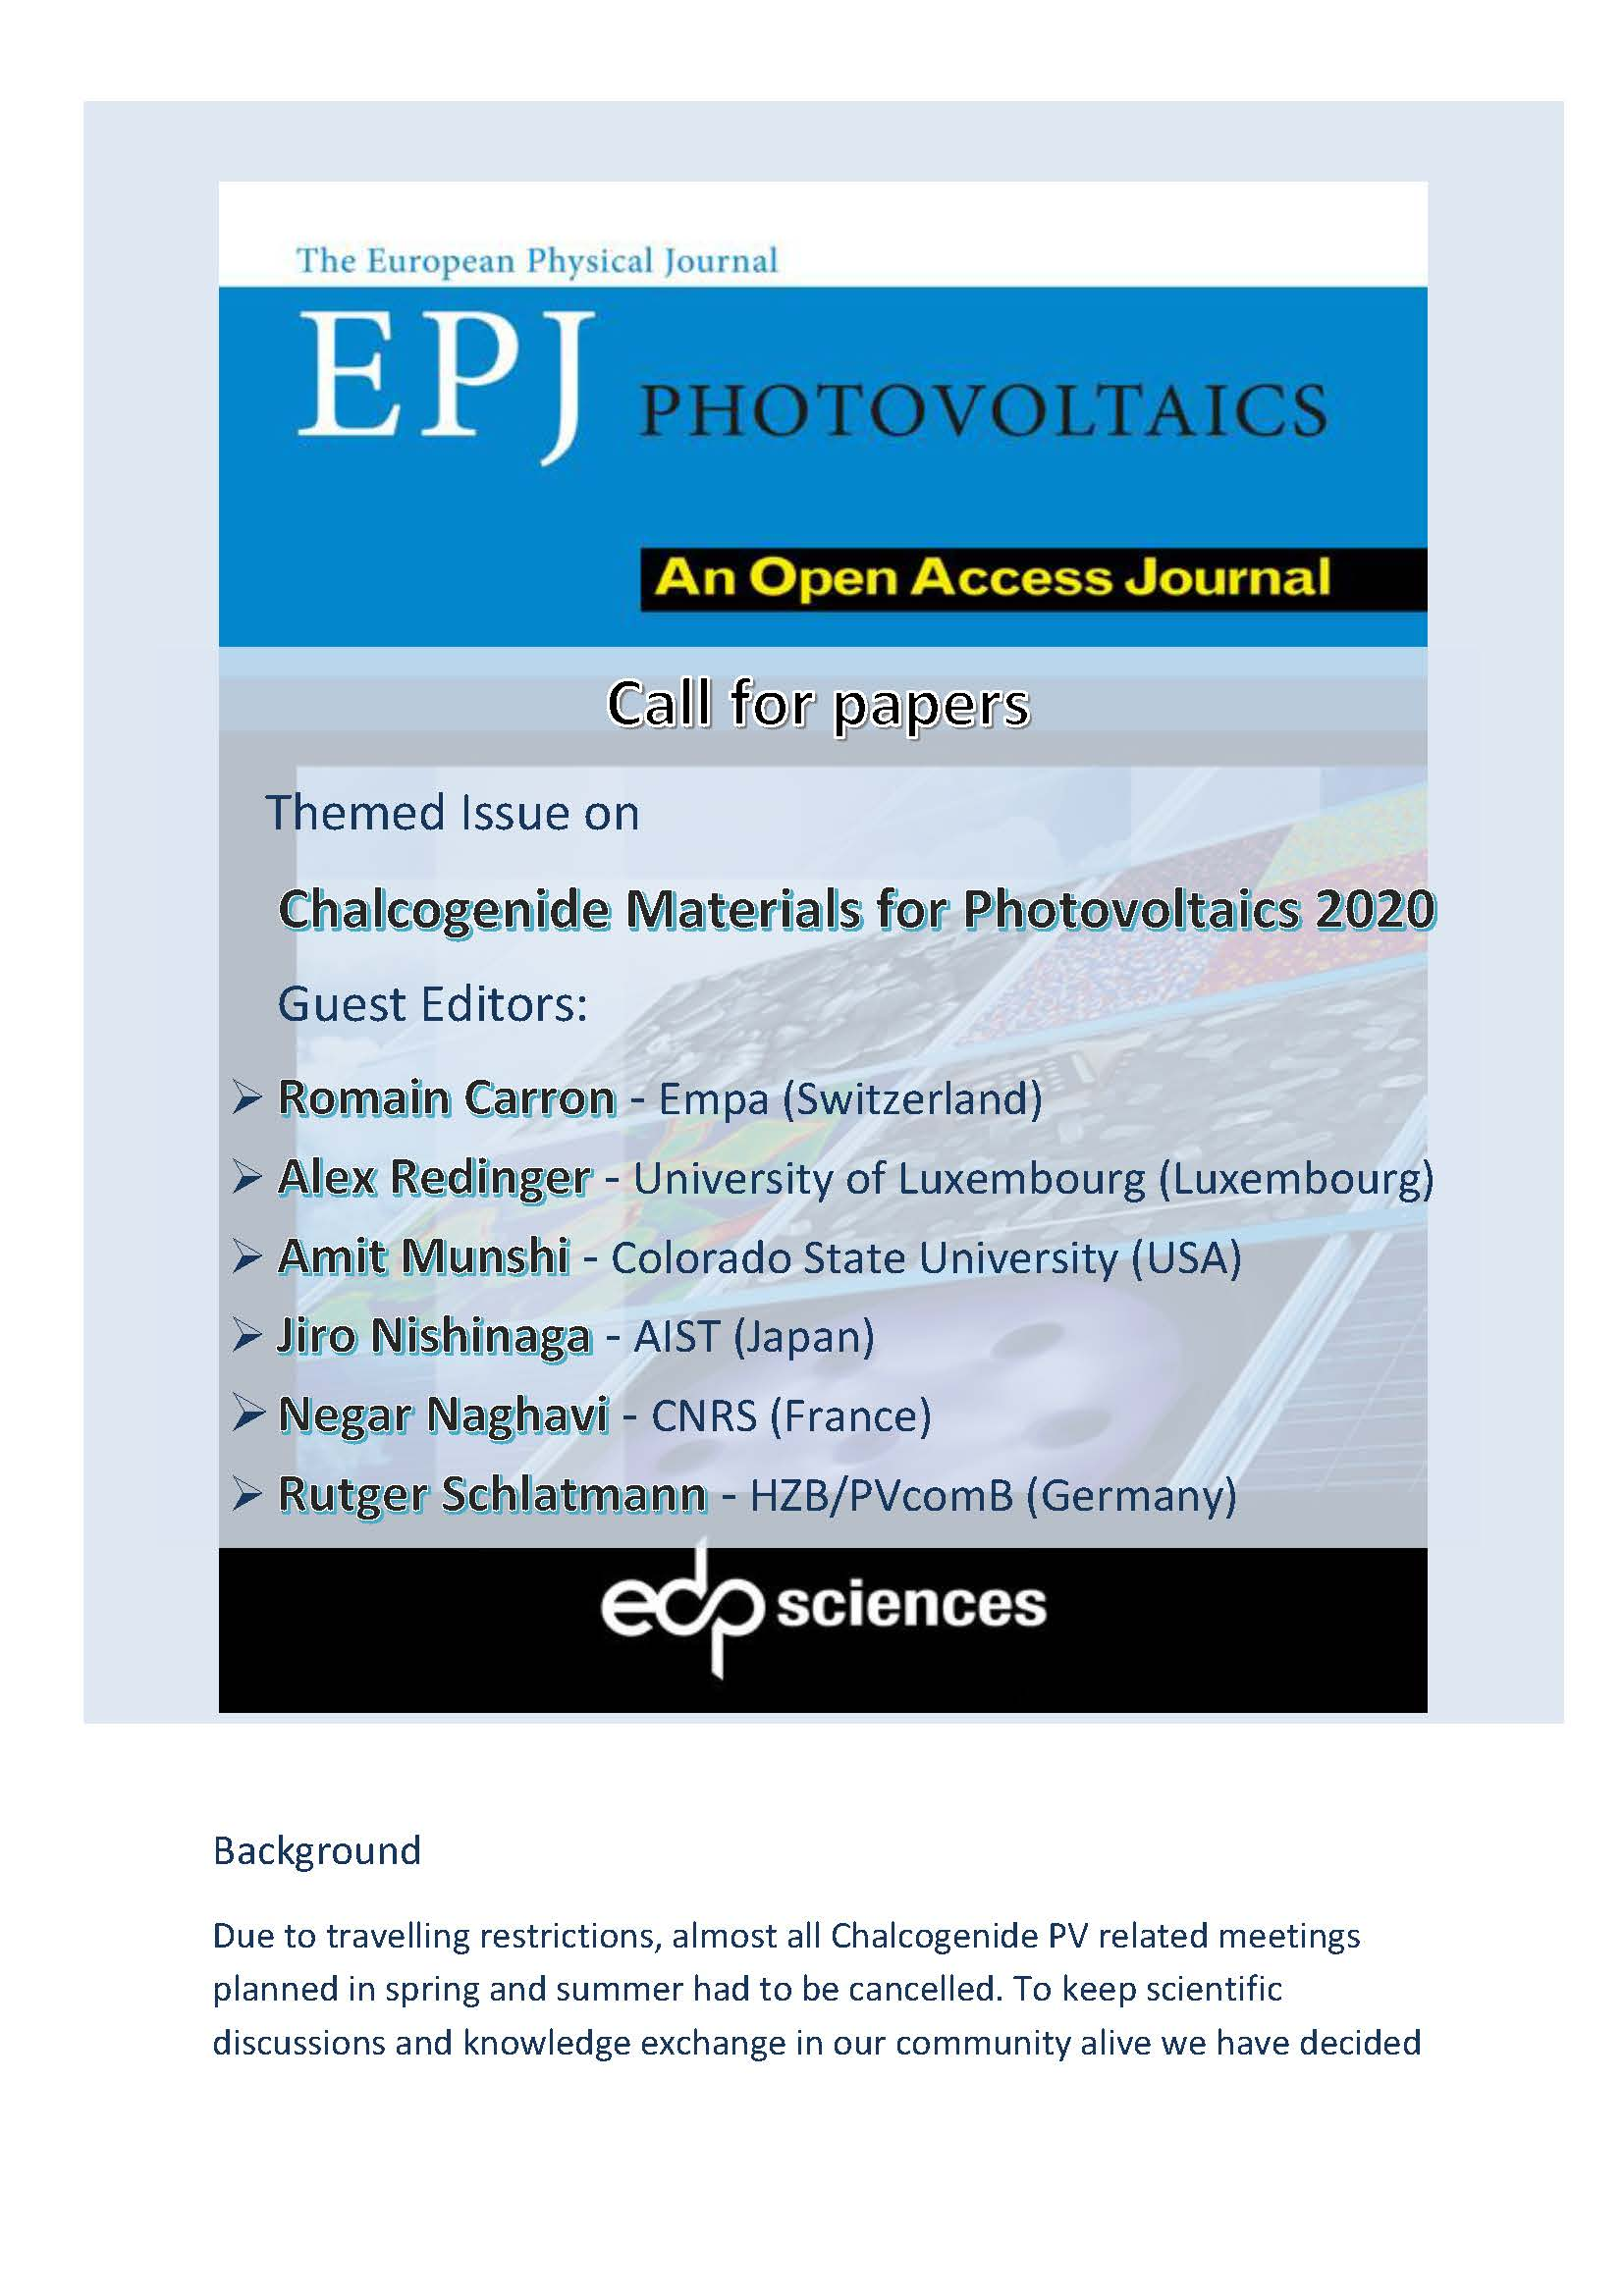 EPJ Photovoltaics - enlarged view